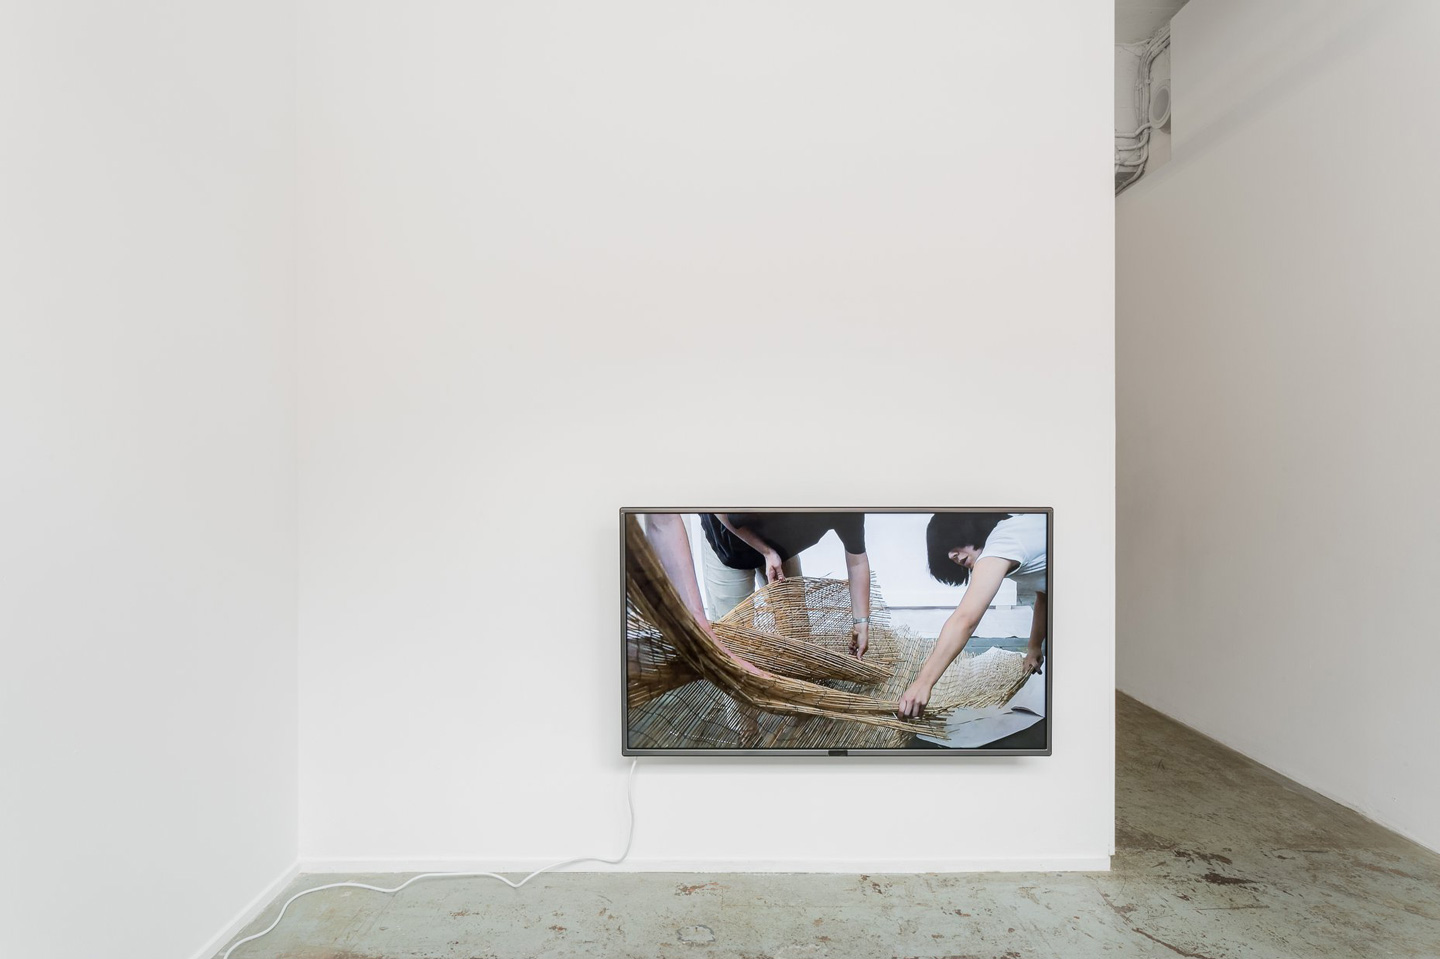 <p><em>Talking to the back of your head</em>, 2018, single channel high definition digital video, 11:29, continuous loop. Installation view, Bus Projects, Narrm (Melbourne), 2018. Photography: Christo Crocker.</p>